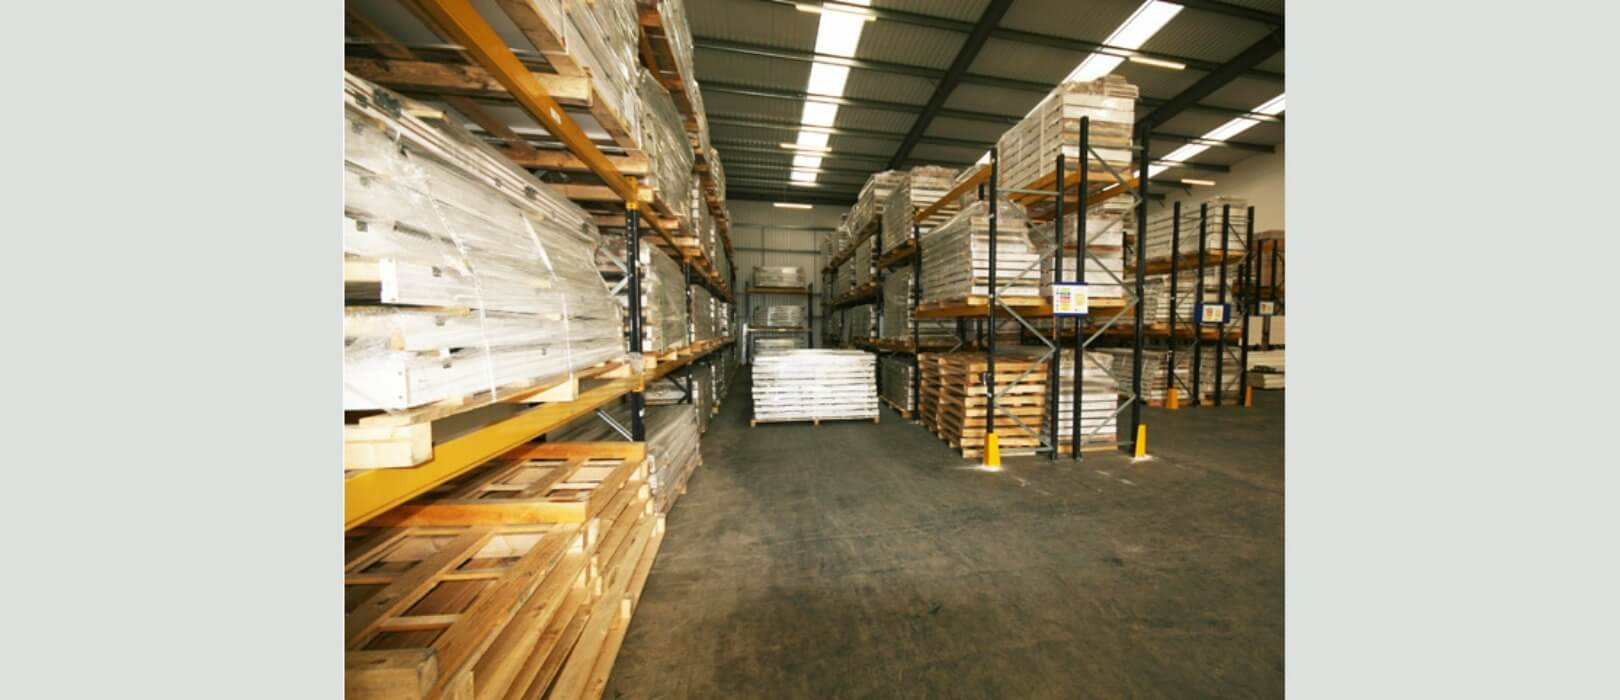 New Warehouse Opened Lower image